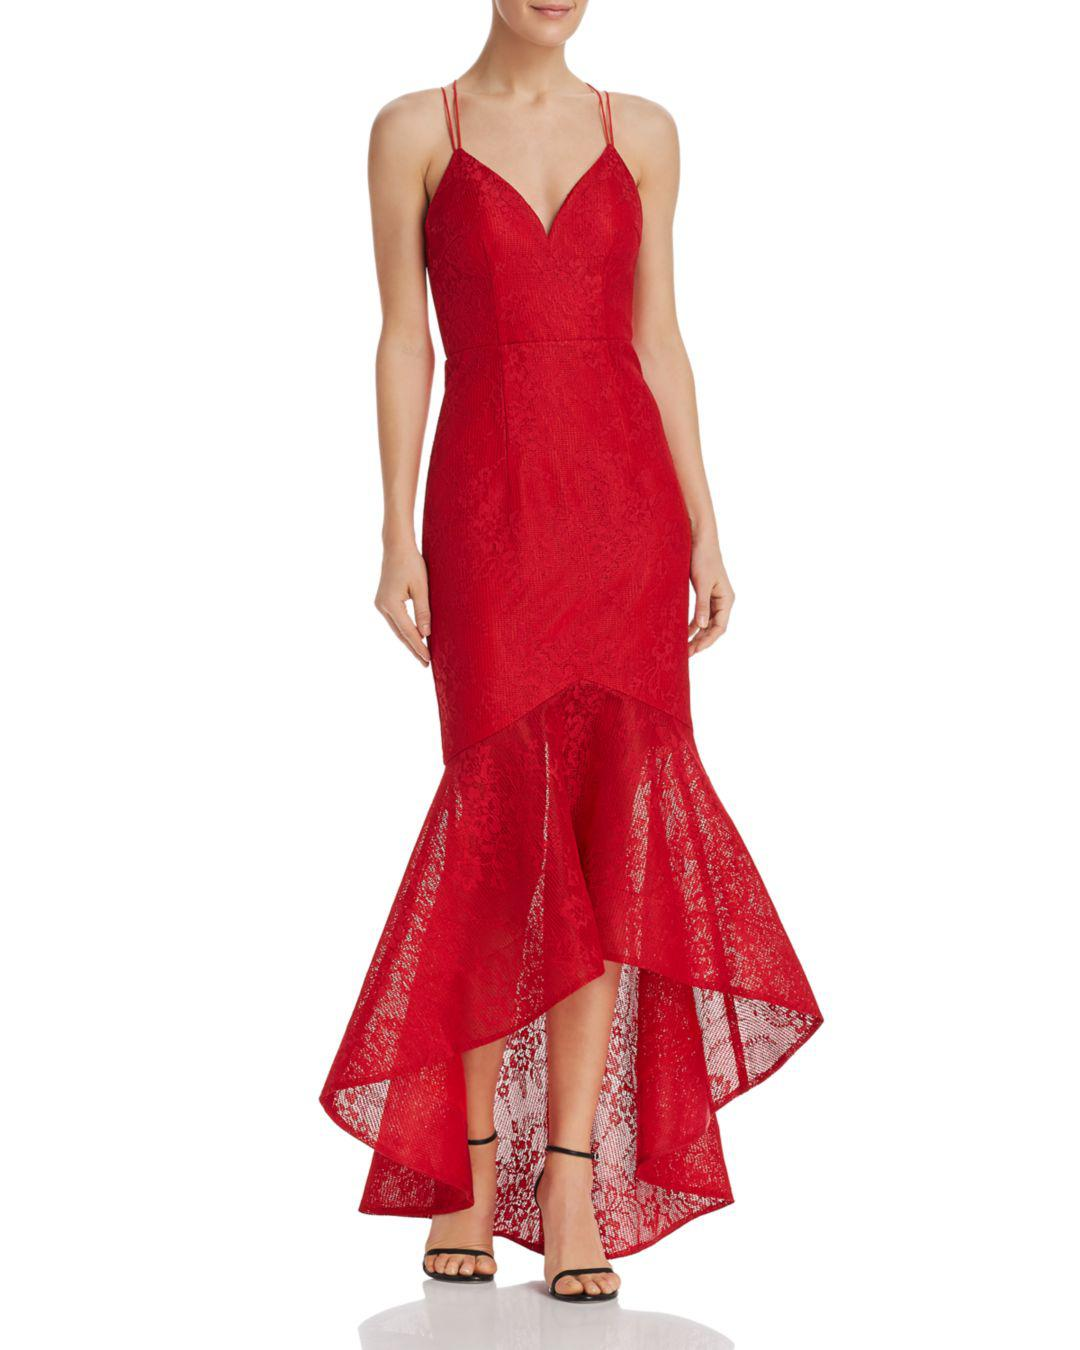 6c52af643419 Lyst - Bariano Lace Fishtail Dress in Red